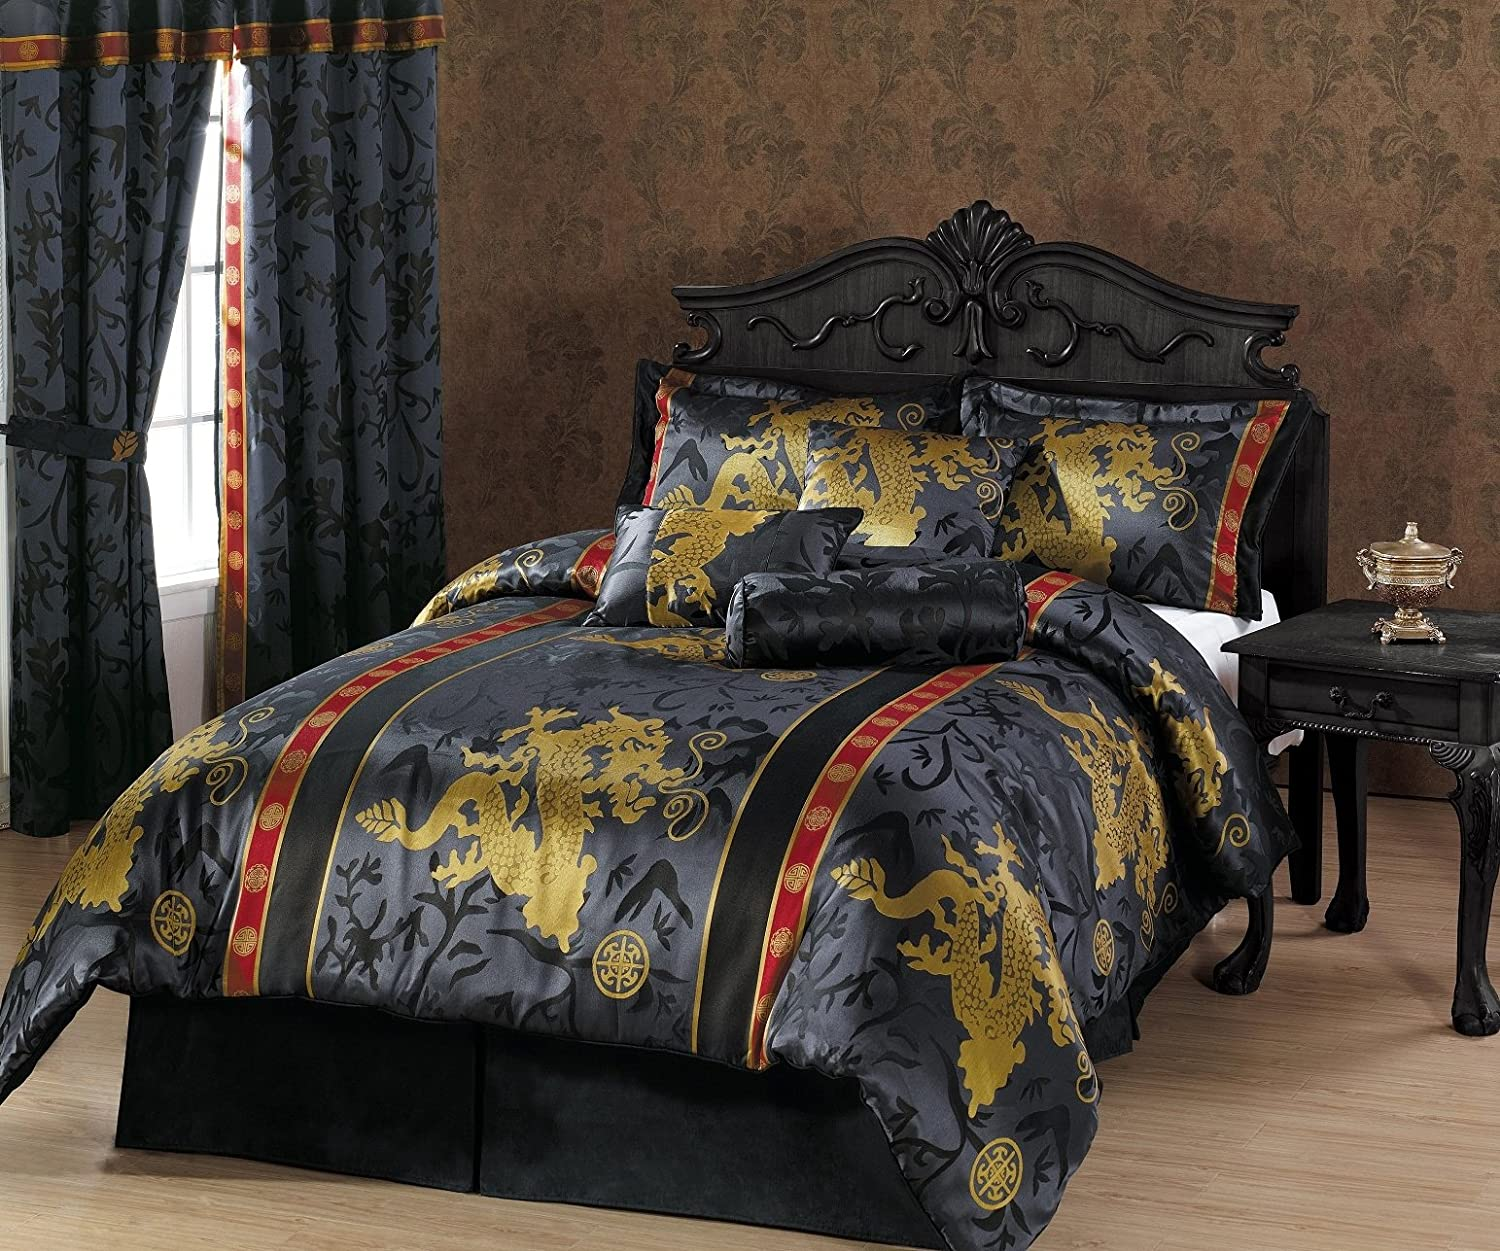 Chinese Decorations For Bedroom Dragon Bedroom Dragon Decor Ideas